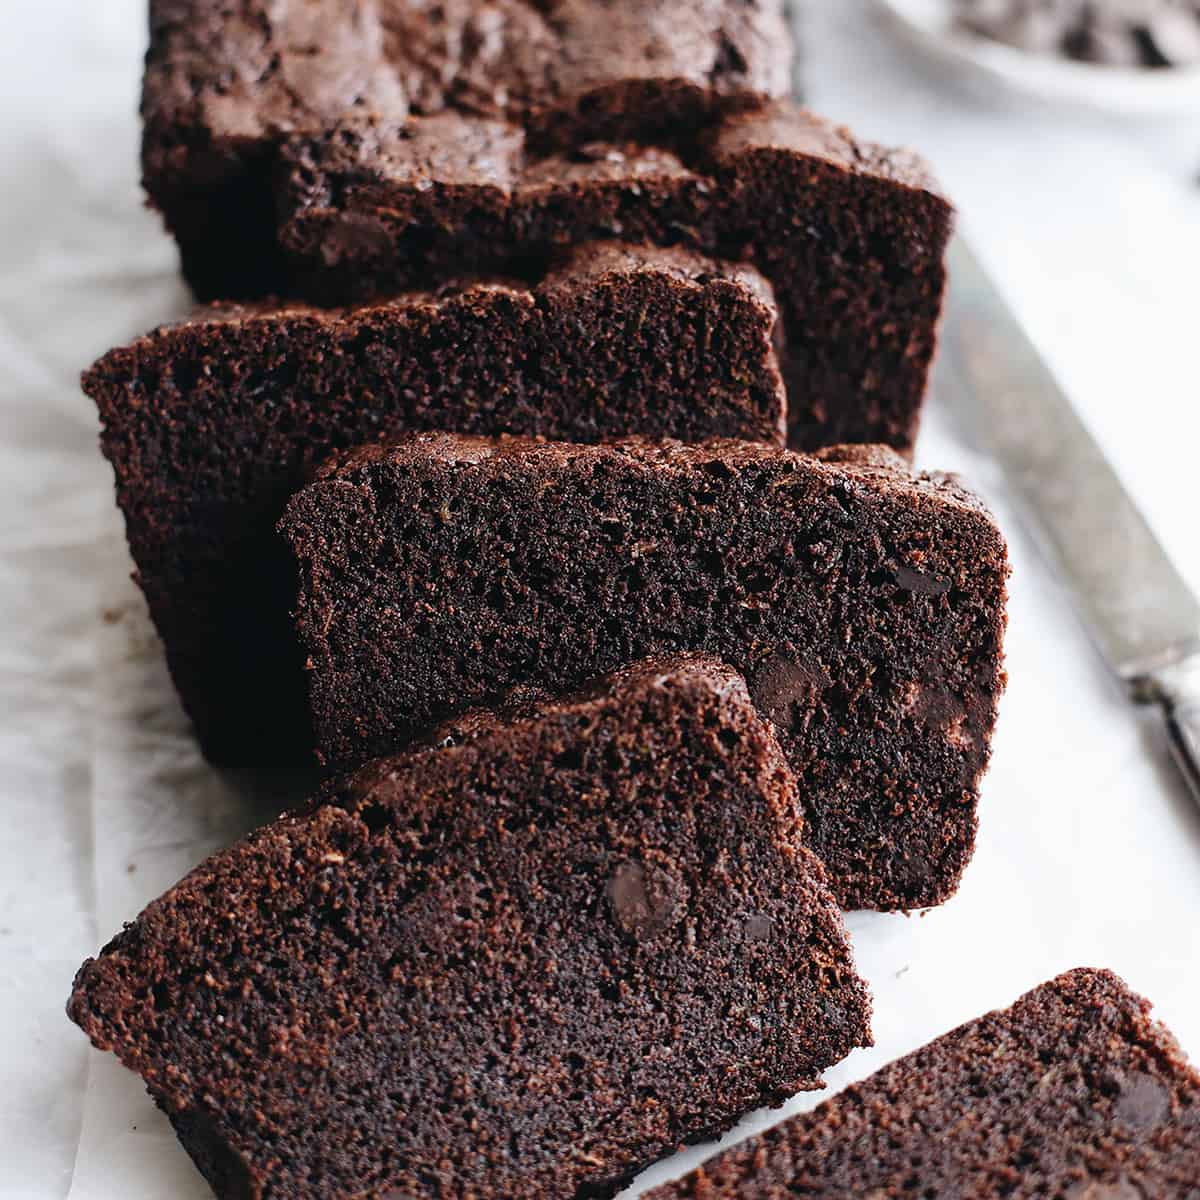 front view of 4 slices of chocolate zucchini bread